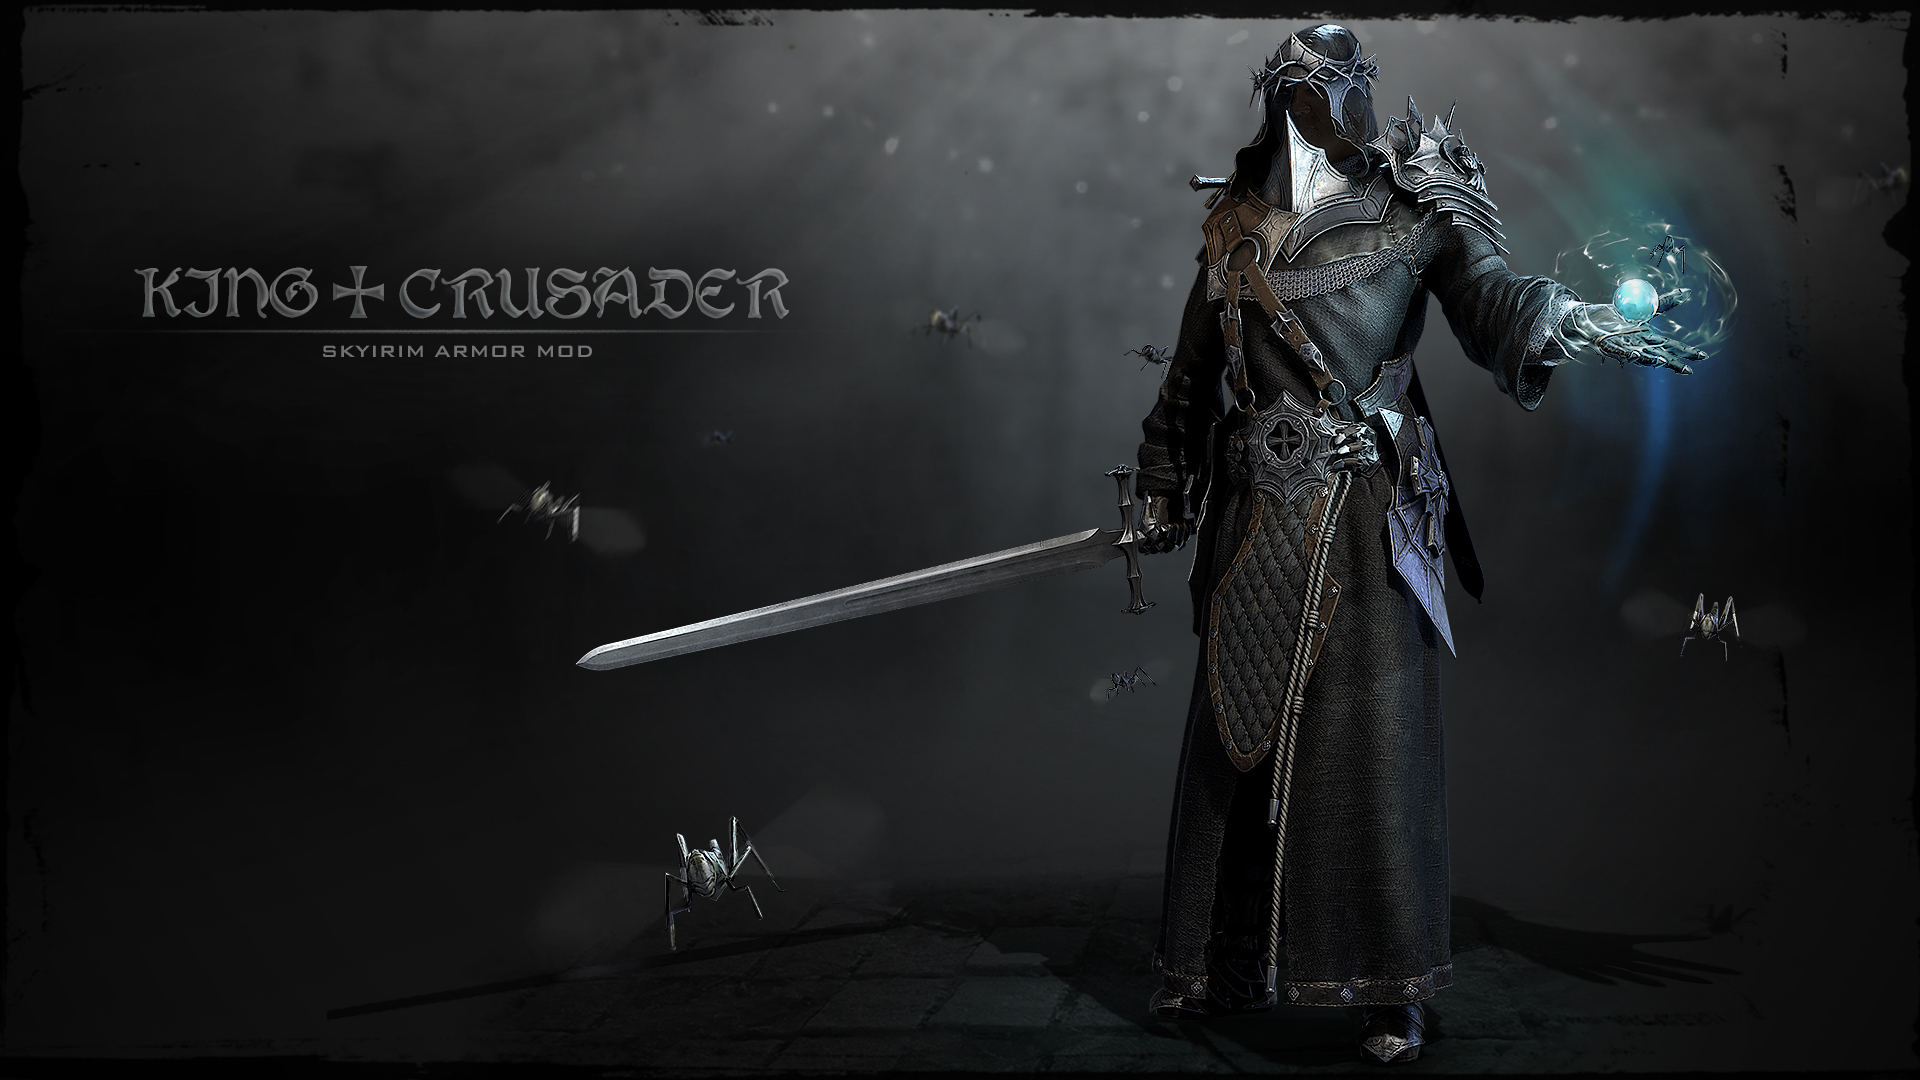 DCR - King Crusader Armor